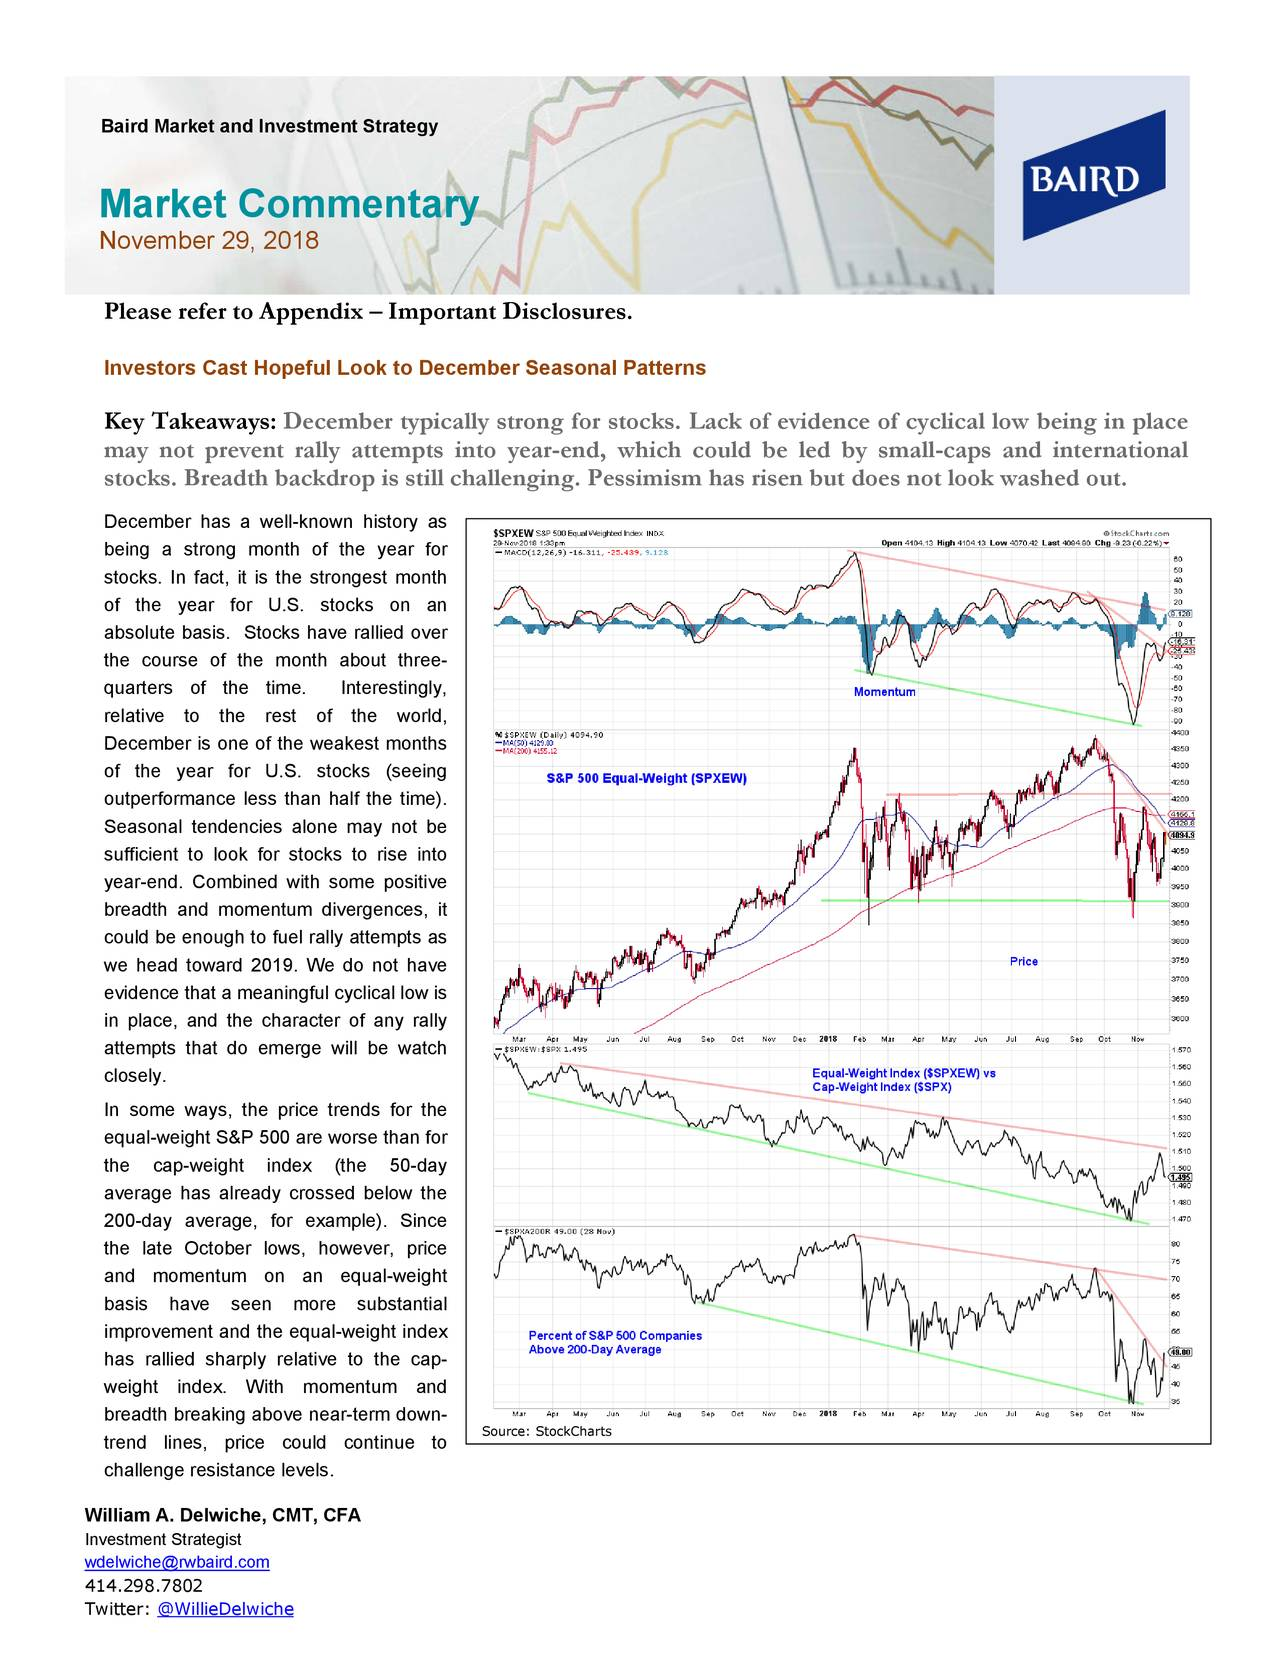 Market Commentary November 29, 2018 Please refer to Appendix – Important Disclosures. Investors Cast Hopeful Look to December Seasonal Patterns Key Takeaways: December typically strong for stocks. Lack of evidence of cyclical low being in place may not prevent rally attempts into year -end, which could be led by small -caps and international stocks. Breadth backdrop is still challenging. Pessimism has risen but does not look washed out. December has a well -known history as being a strong month of the year for stocks. In fact, it is the strongest month of the year for U.S. stocks on an absolute basis. Stocks have rallied over the course of the month about three- quarters of the time. Interestingly, relative to the rest of the world, December is one of the weakest months of the year for U.S. stocks (seeing outperformance less than half the time). Seasonal tendencies alone may not be sufficient to look for stocks to rise into year-end. Combined with some positive breadth and momentum divergences, it could be enough to fuel rally attempts as we head toward 2019. We do not have evidence that a meaningful cyclical low is in place, and the character of any rally attempts that do emerge will be watch closely. In some ways, the price trends for the equal-weight S&P 500 are worse than for the cap-weight index (the 50-day average has already crossed below the 200-day average, for example). Since the late October lows, however, price and momentum on an equal -weight basis have seen more substantial improvement and the equal -weight index has rallied sharply relative to the cap- weight index. With momentum and breadth breaking above near-term down- trend lines, price could continue to Source: StockCharts challenge resistance levels. William A. Delwiche, CMT, CFA Investment Strategist wdelwiche@rwbaird.com 414.298.7802 Twitter: @WillieDelwiche